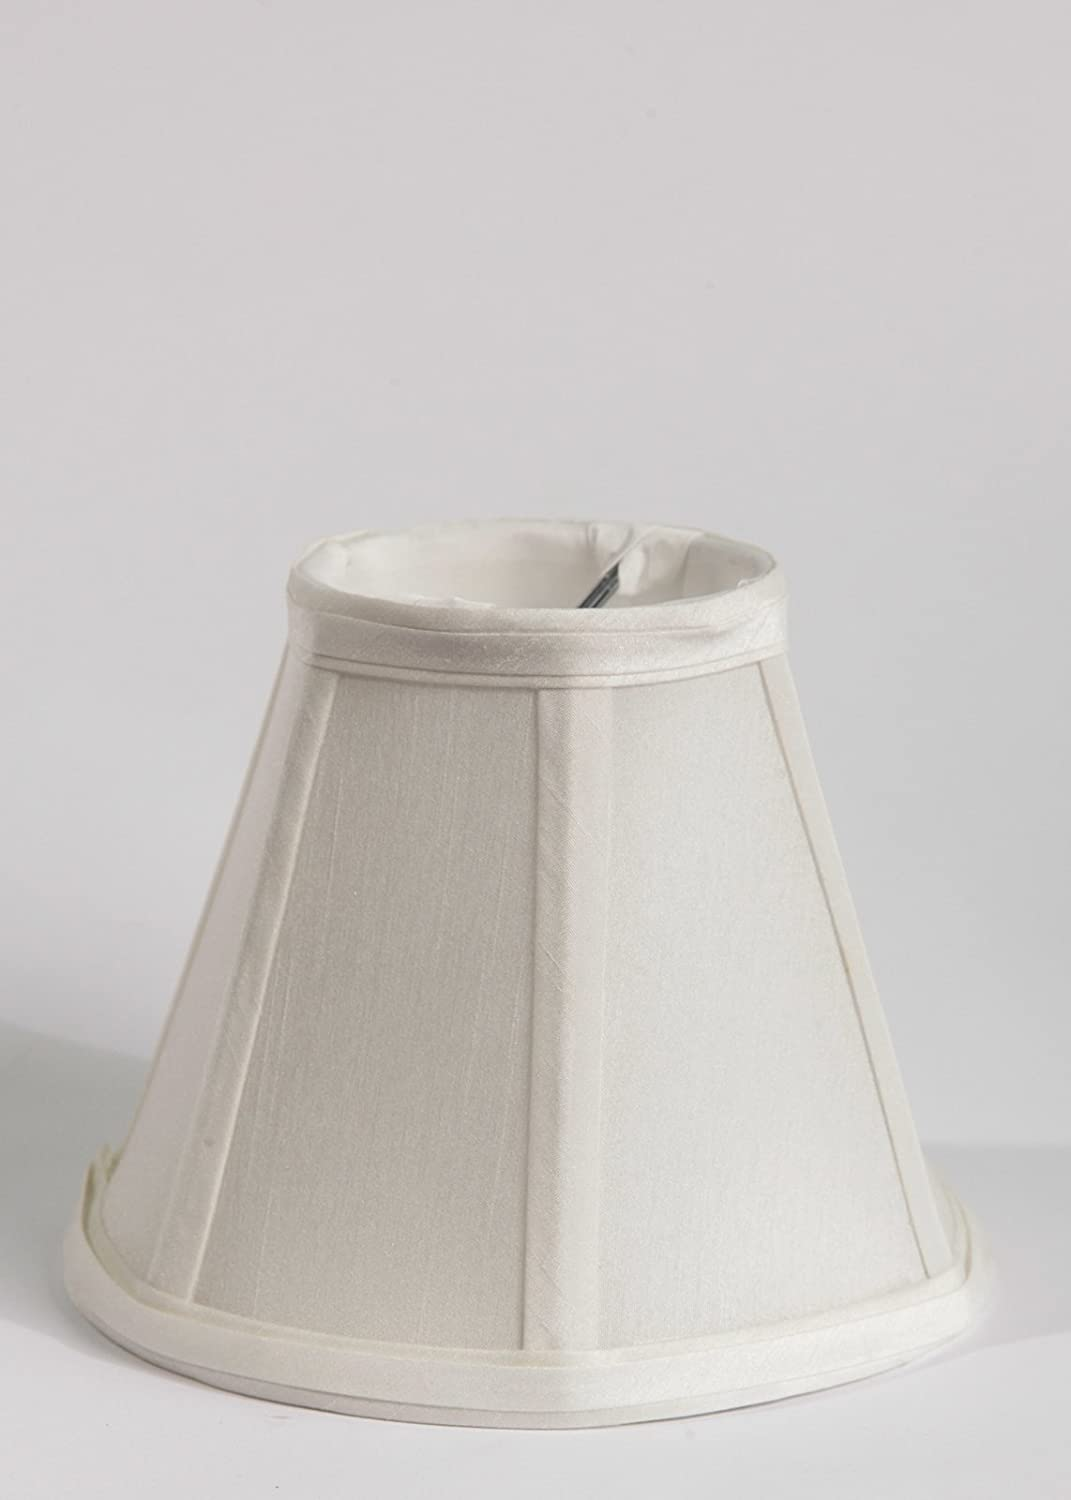 Urbanest Faux Silk Empire Chandelier Lamp Shade 3 Inch By 6 Inch By 5 Inch Off White Clip On Hardback Lampshades